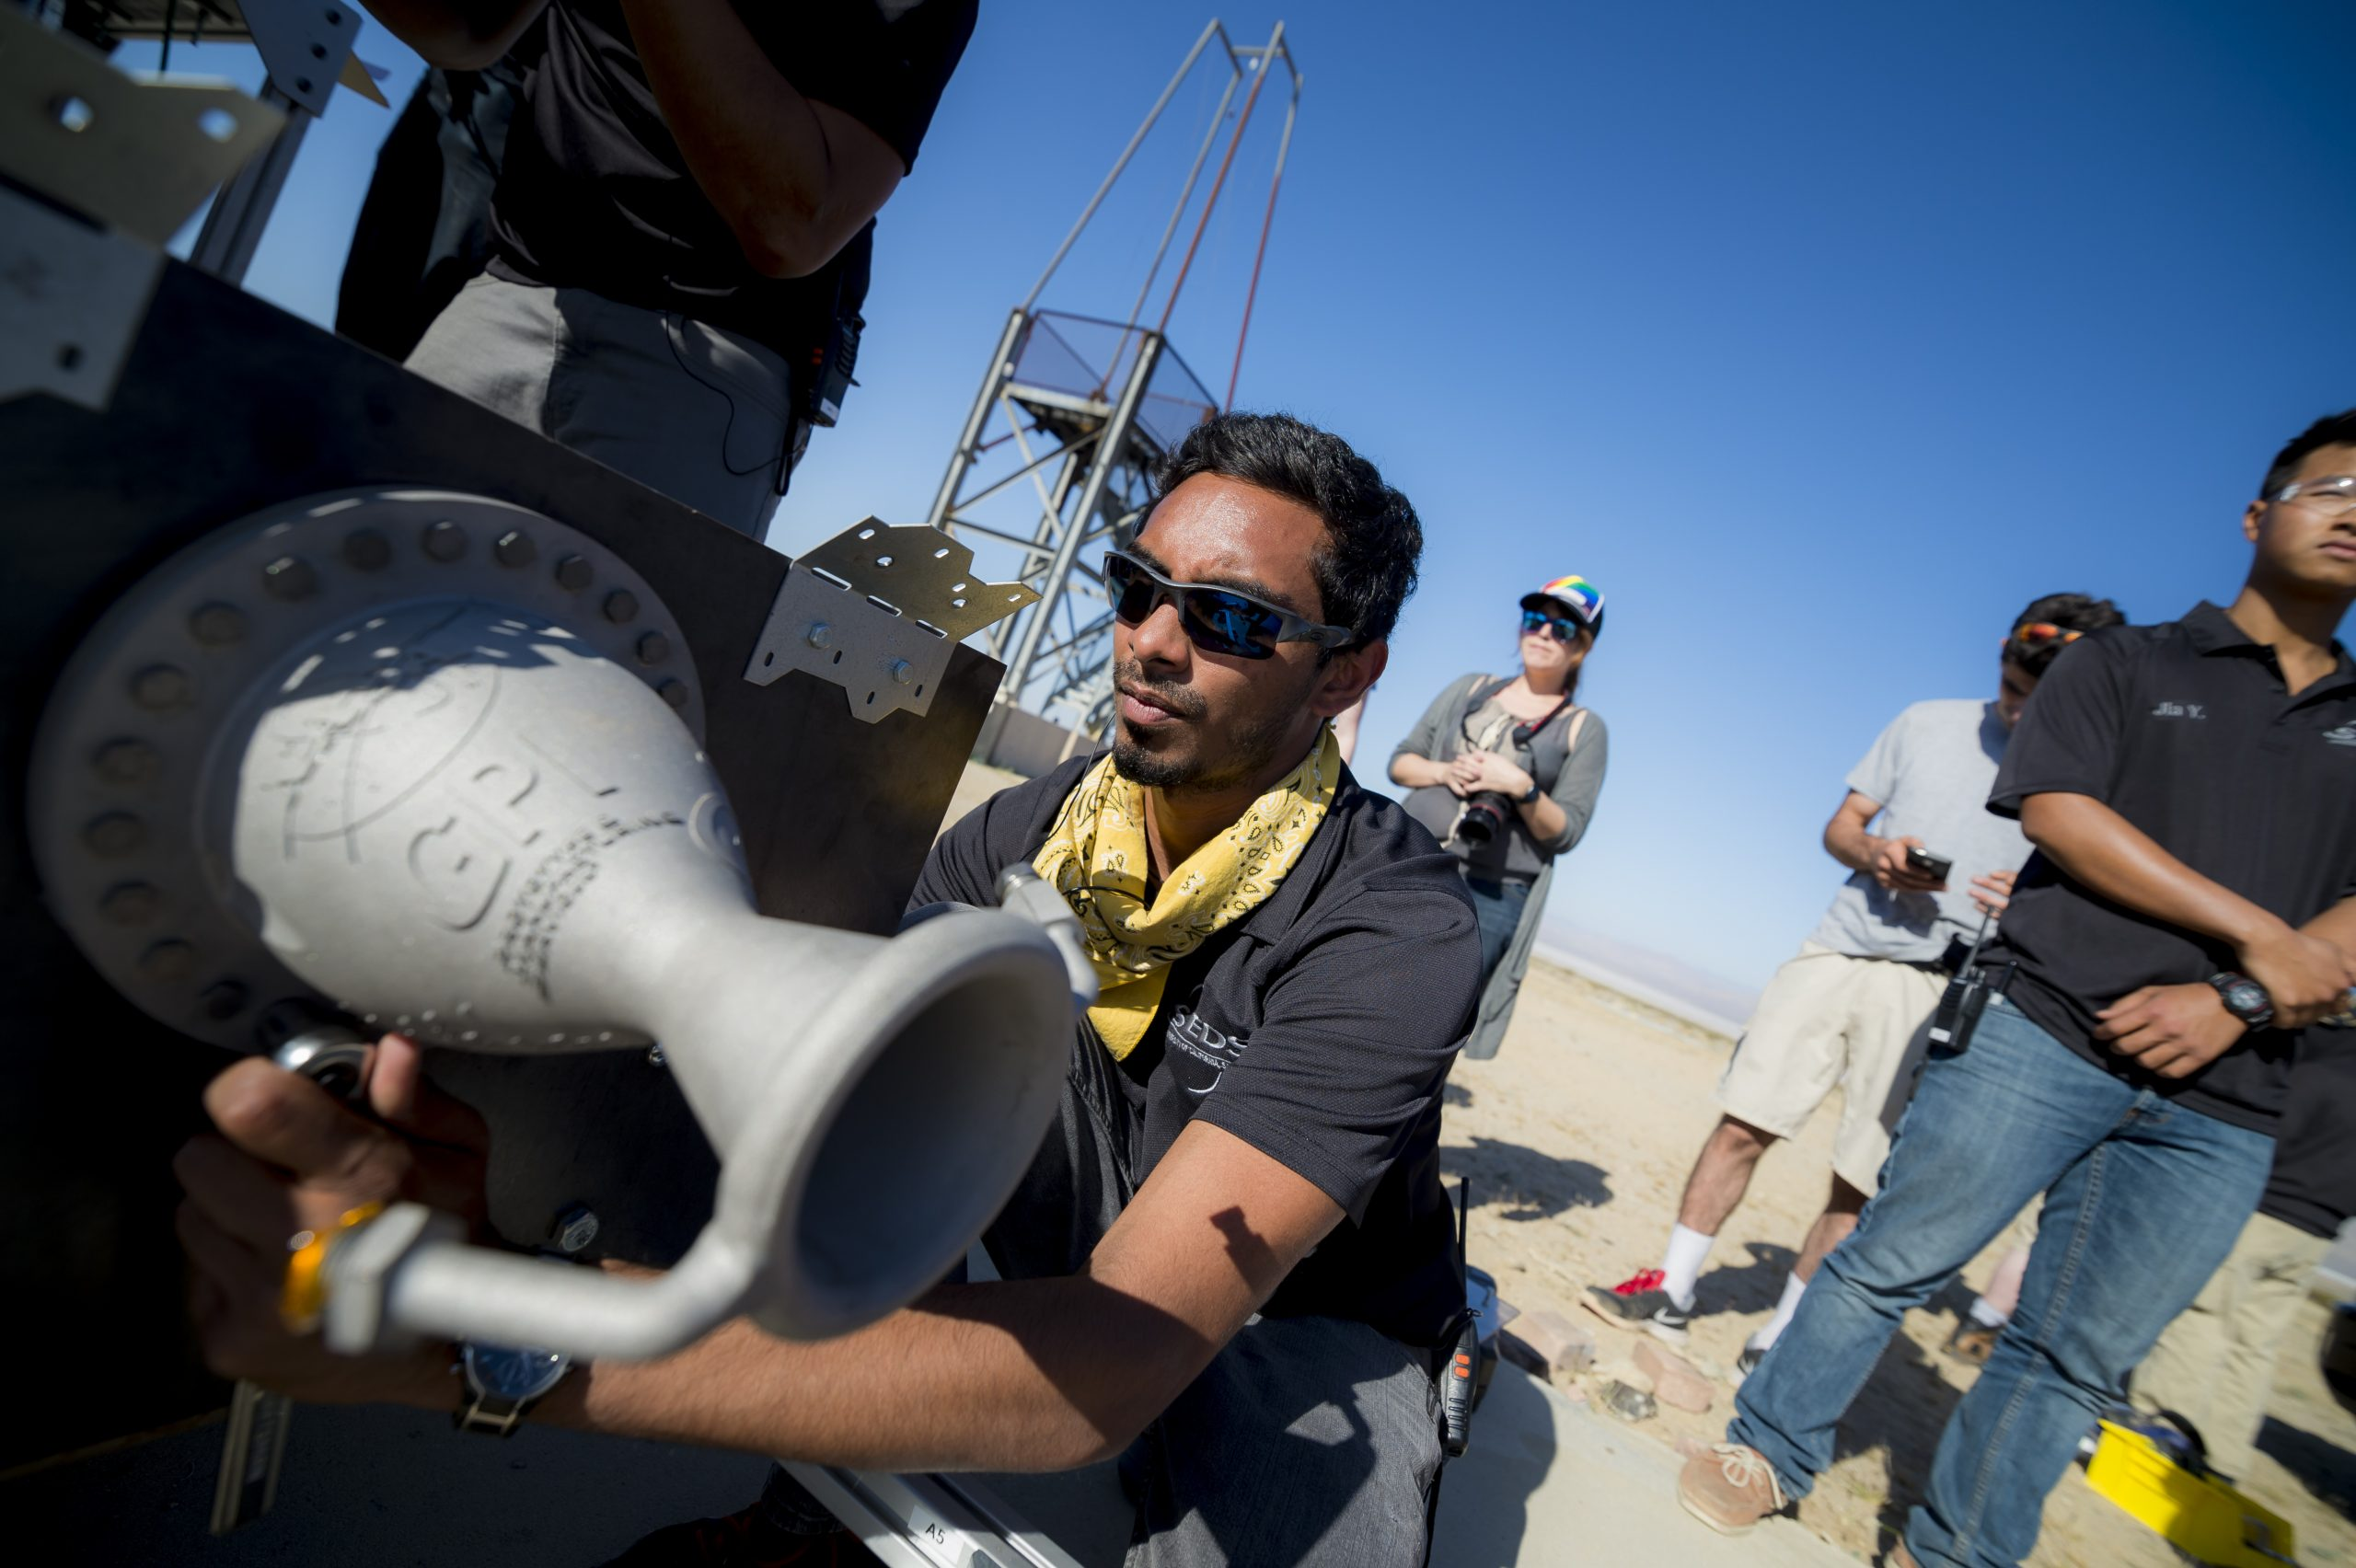 Atyam working on a Tri-D rocket engine created by Atyam and his partner Alex Finch at the University of California San Diego. CREDIT/ERIK JEPSEN